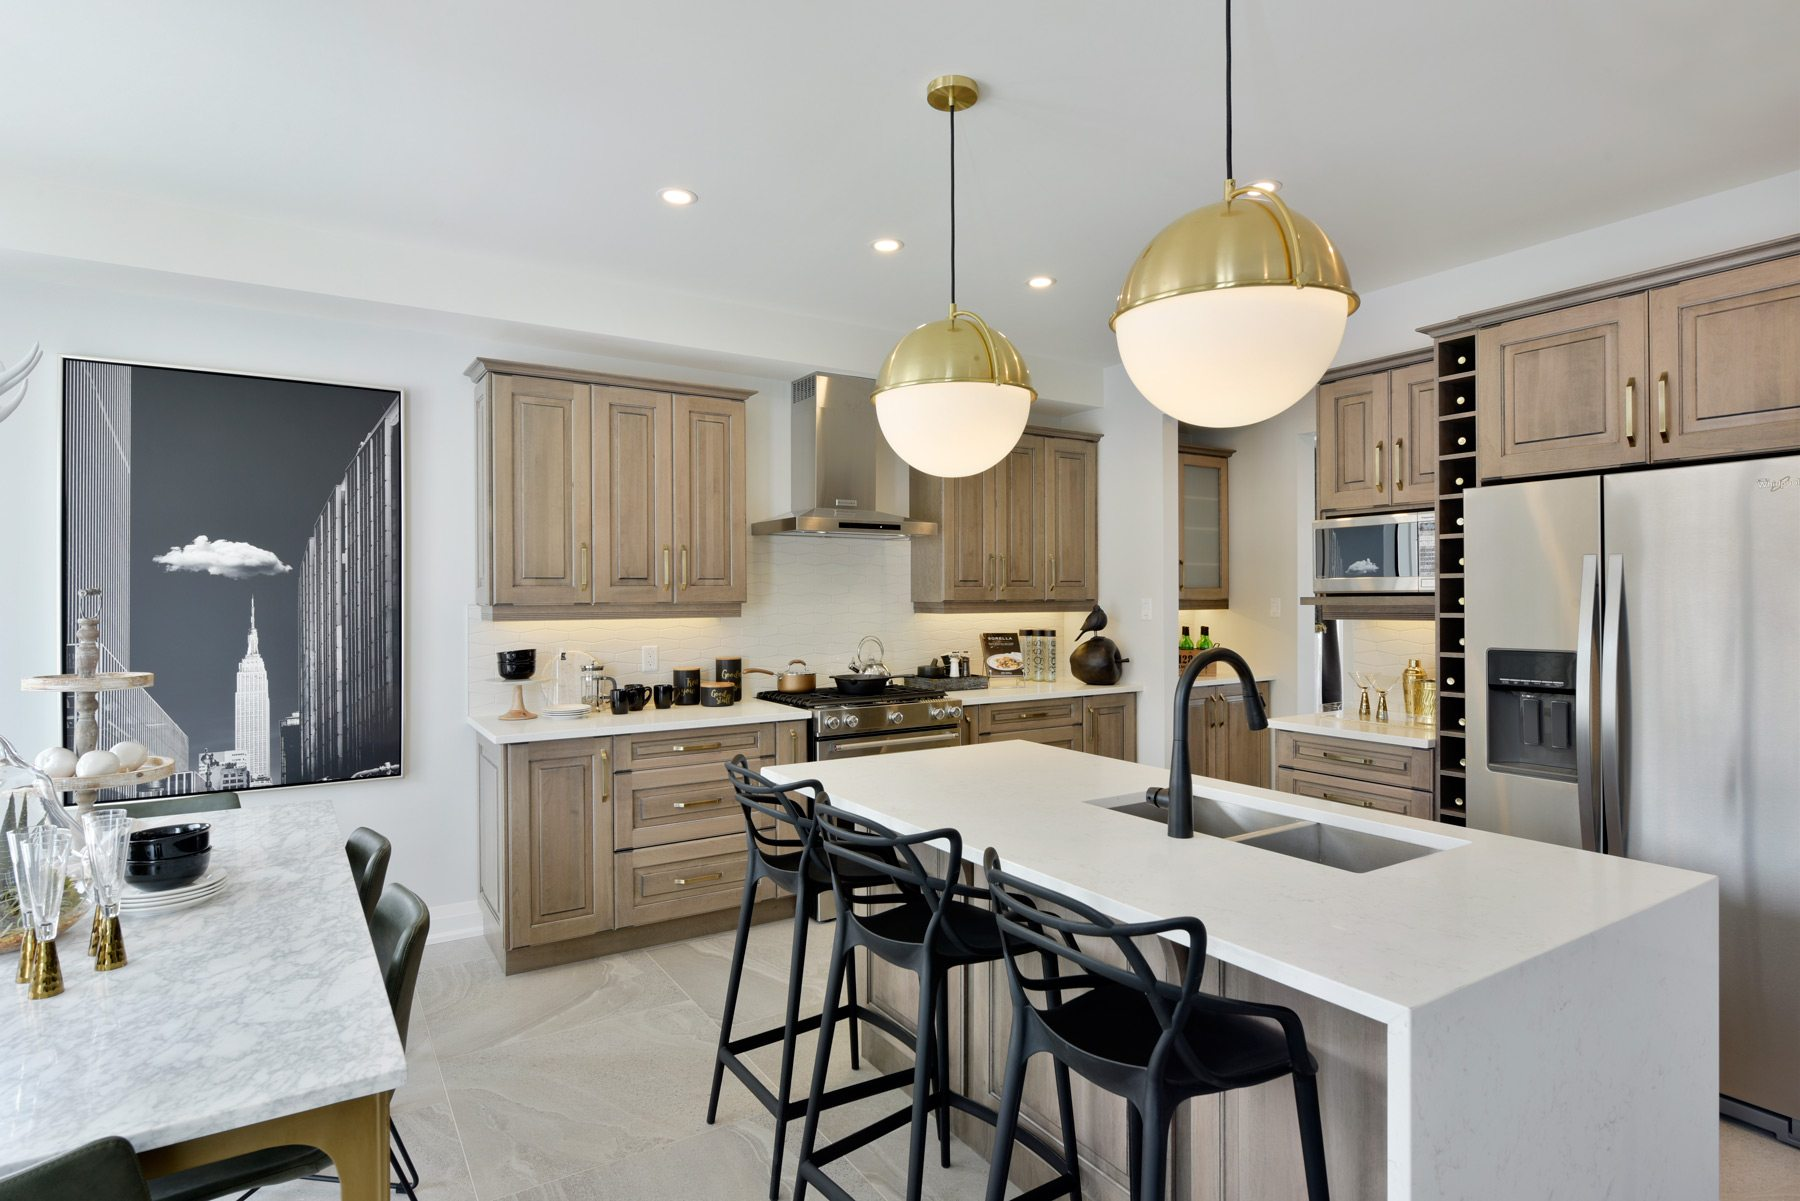 Minto's Elderberry kitchen. Photo: Gordon King Photography